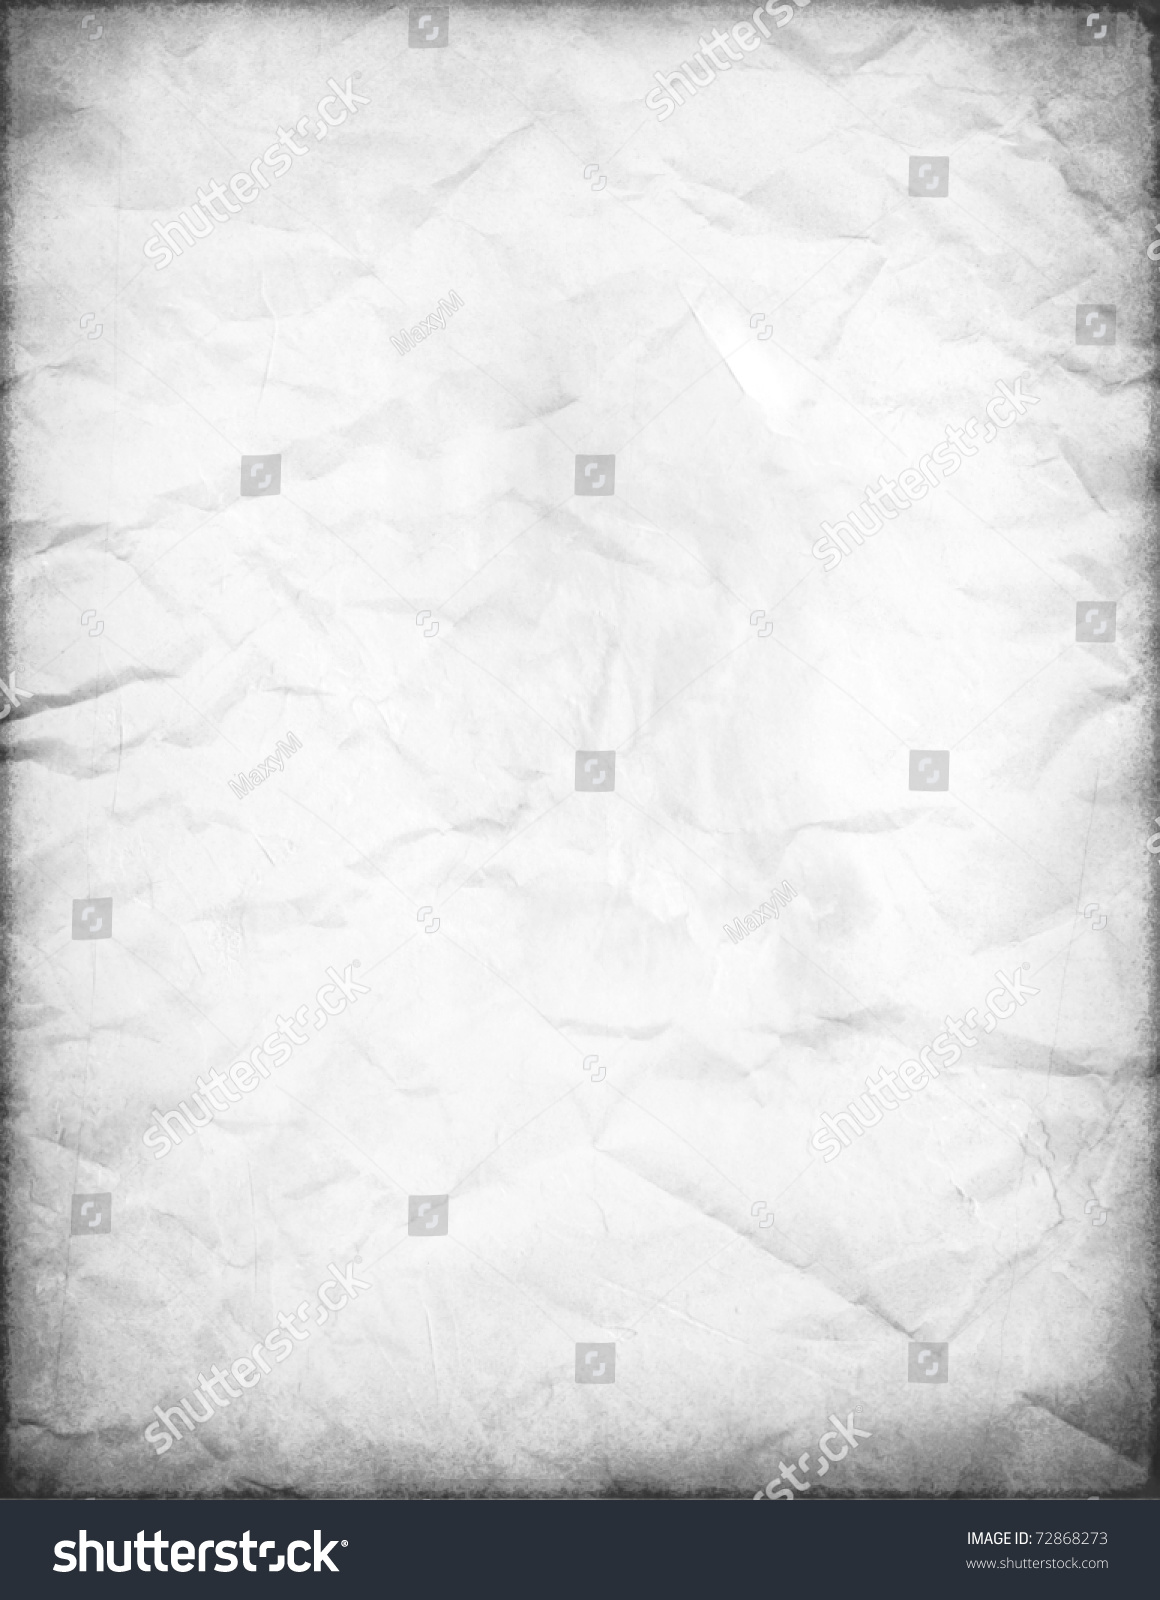 Old White Paper Retro Effect On Stock Photo 72868273 - Shutterstock